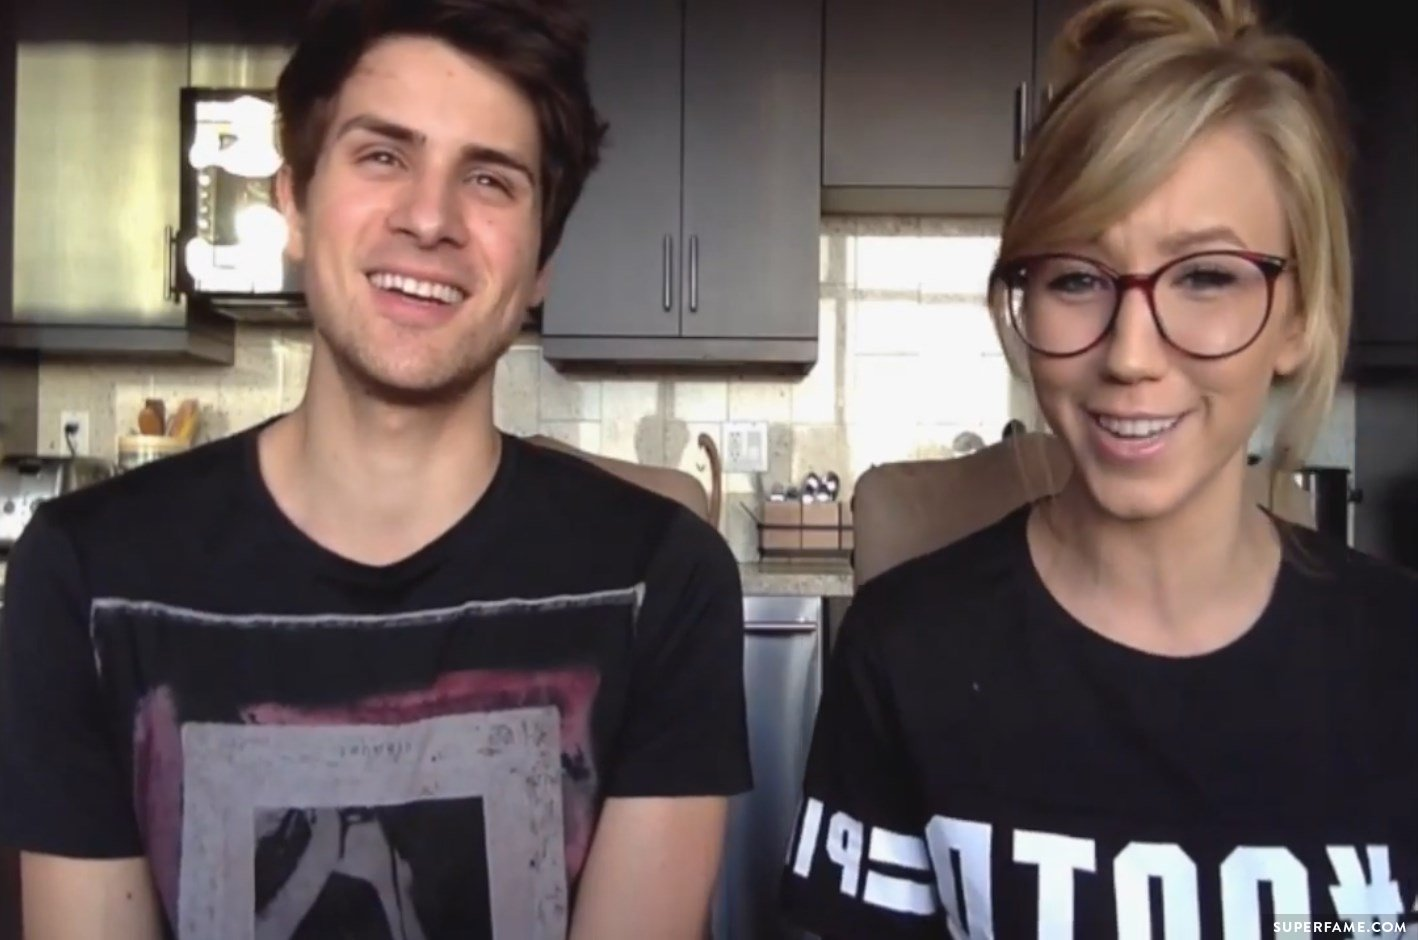 The Wedding Is Off Kalel Kitten Anthony Padilla Break Up In Shocking Video Superfame